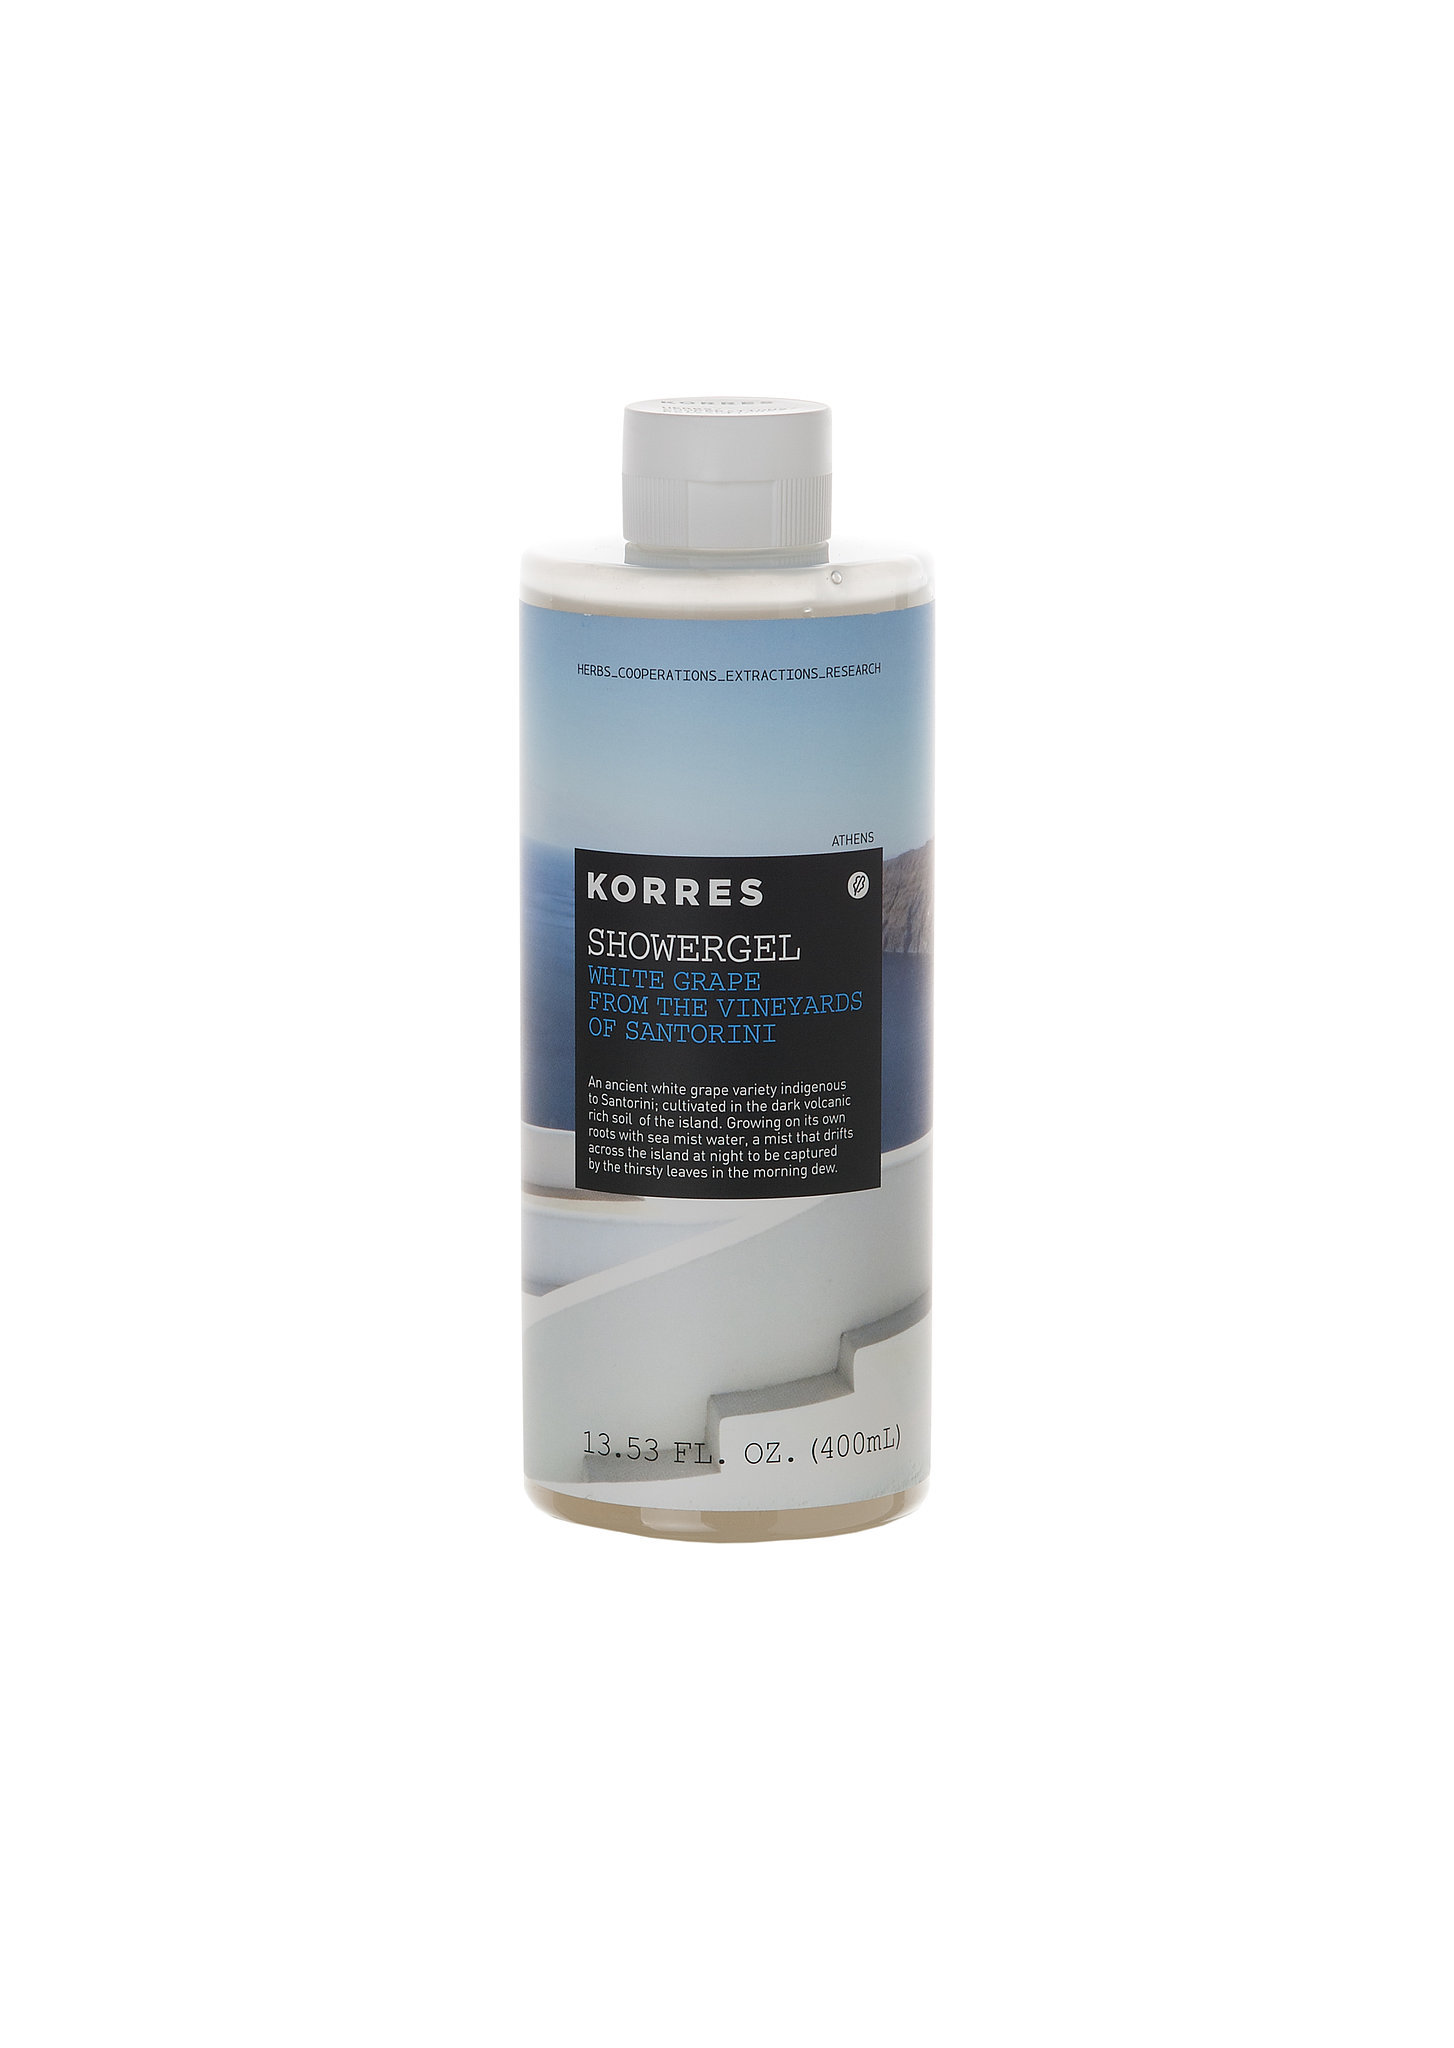 Korres White Grape From the Vineyards of Santorini Shower Gel